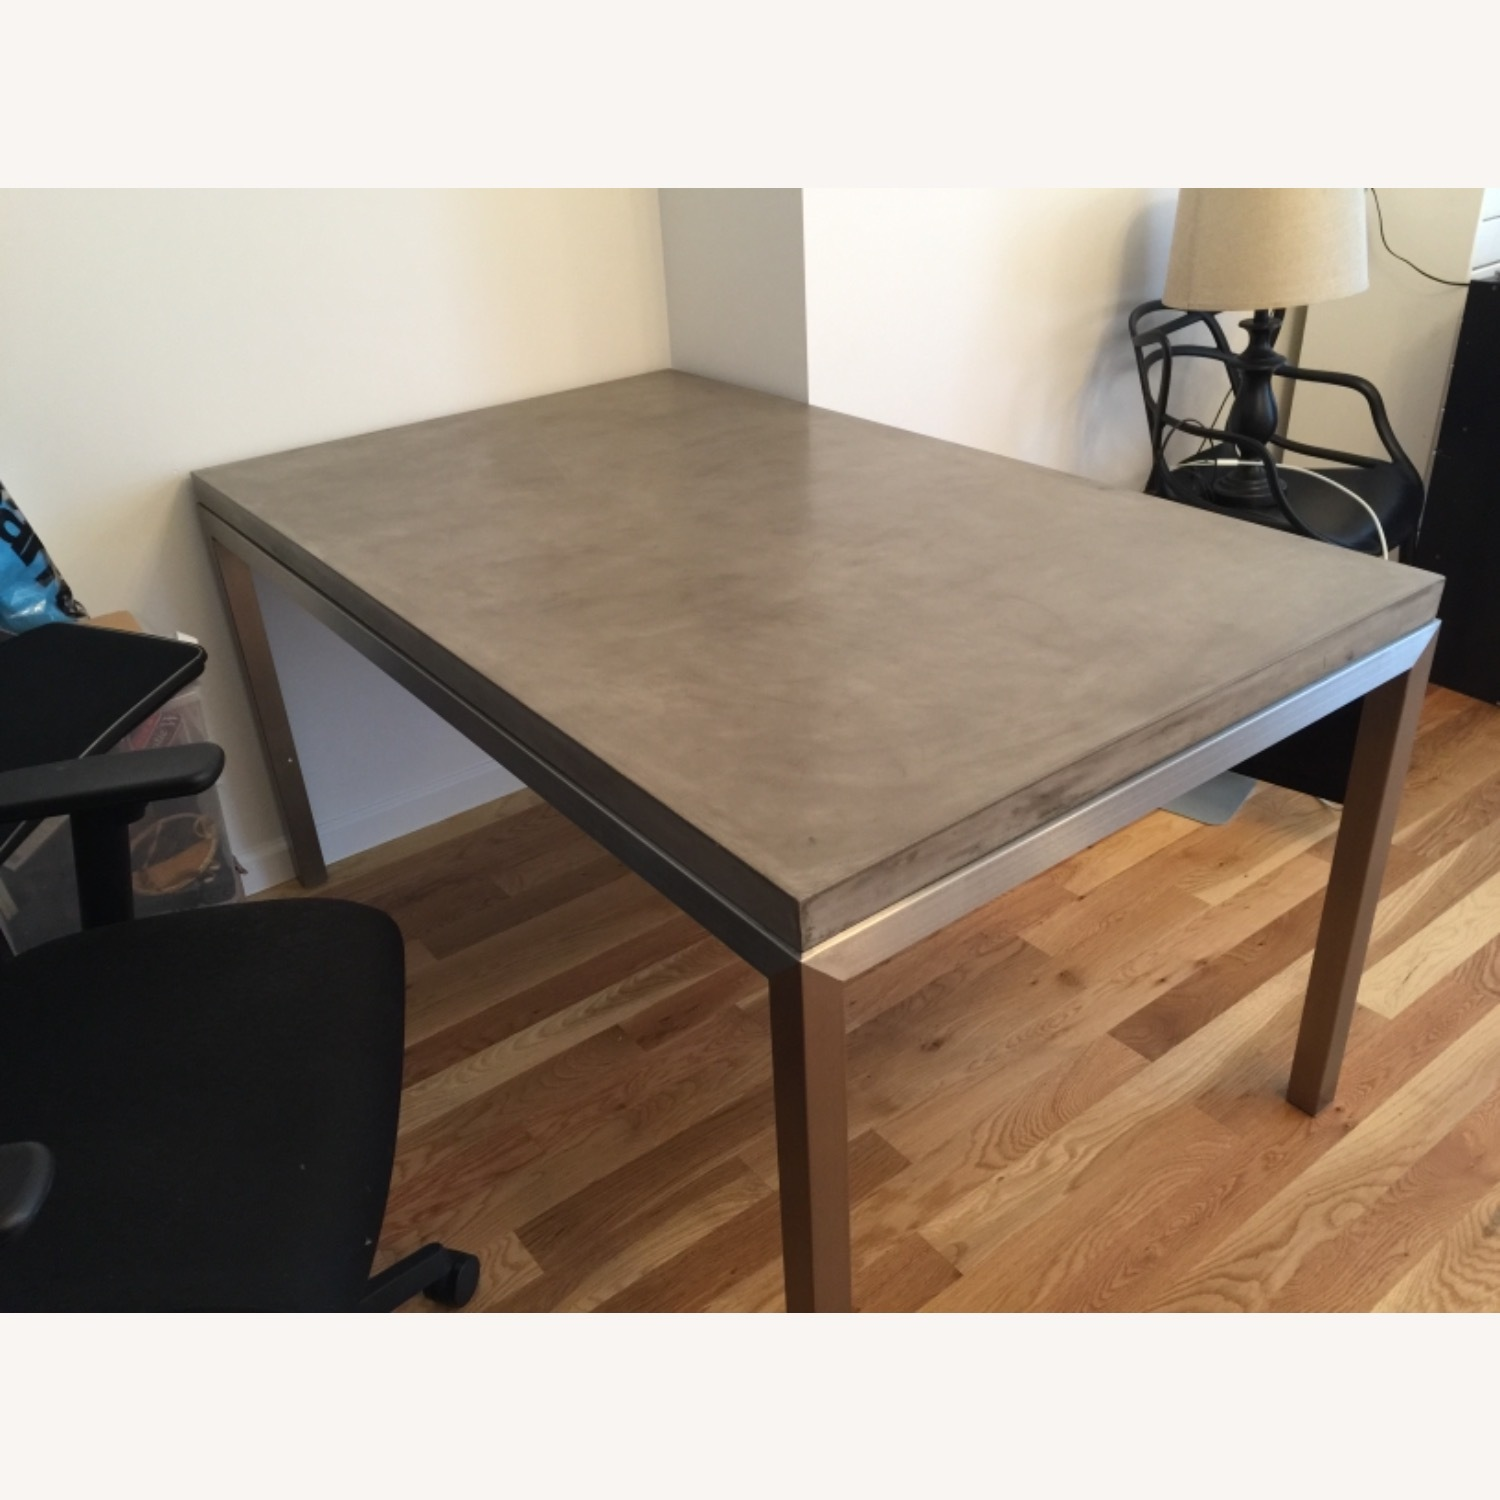 Crate & Barrel Parsons Concrete Dinning Table - image-1